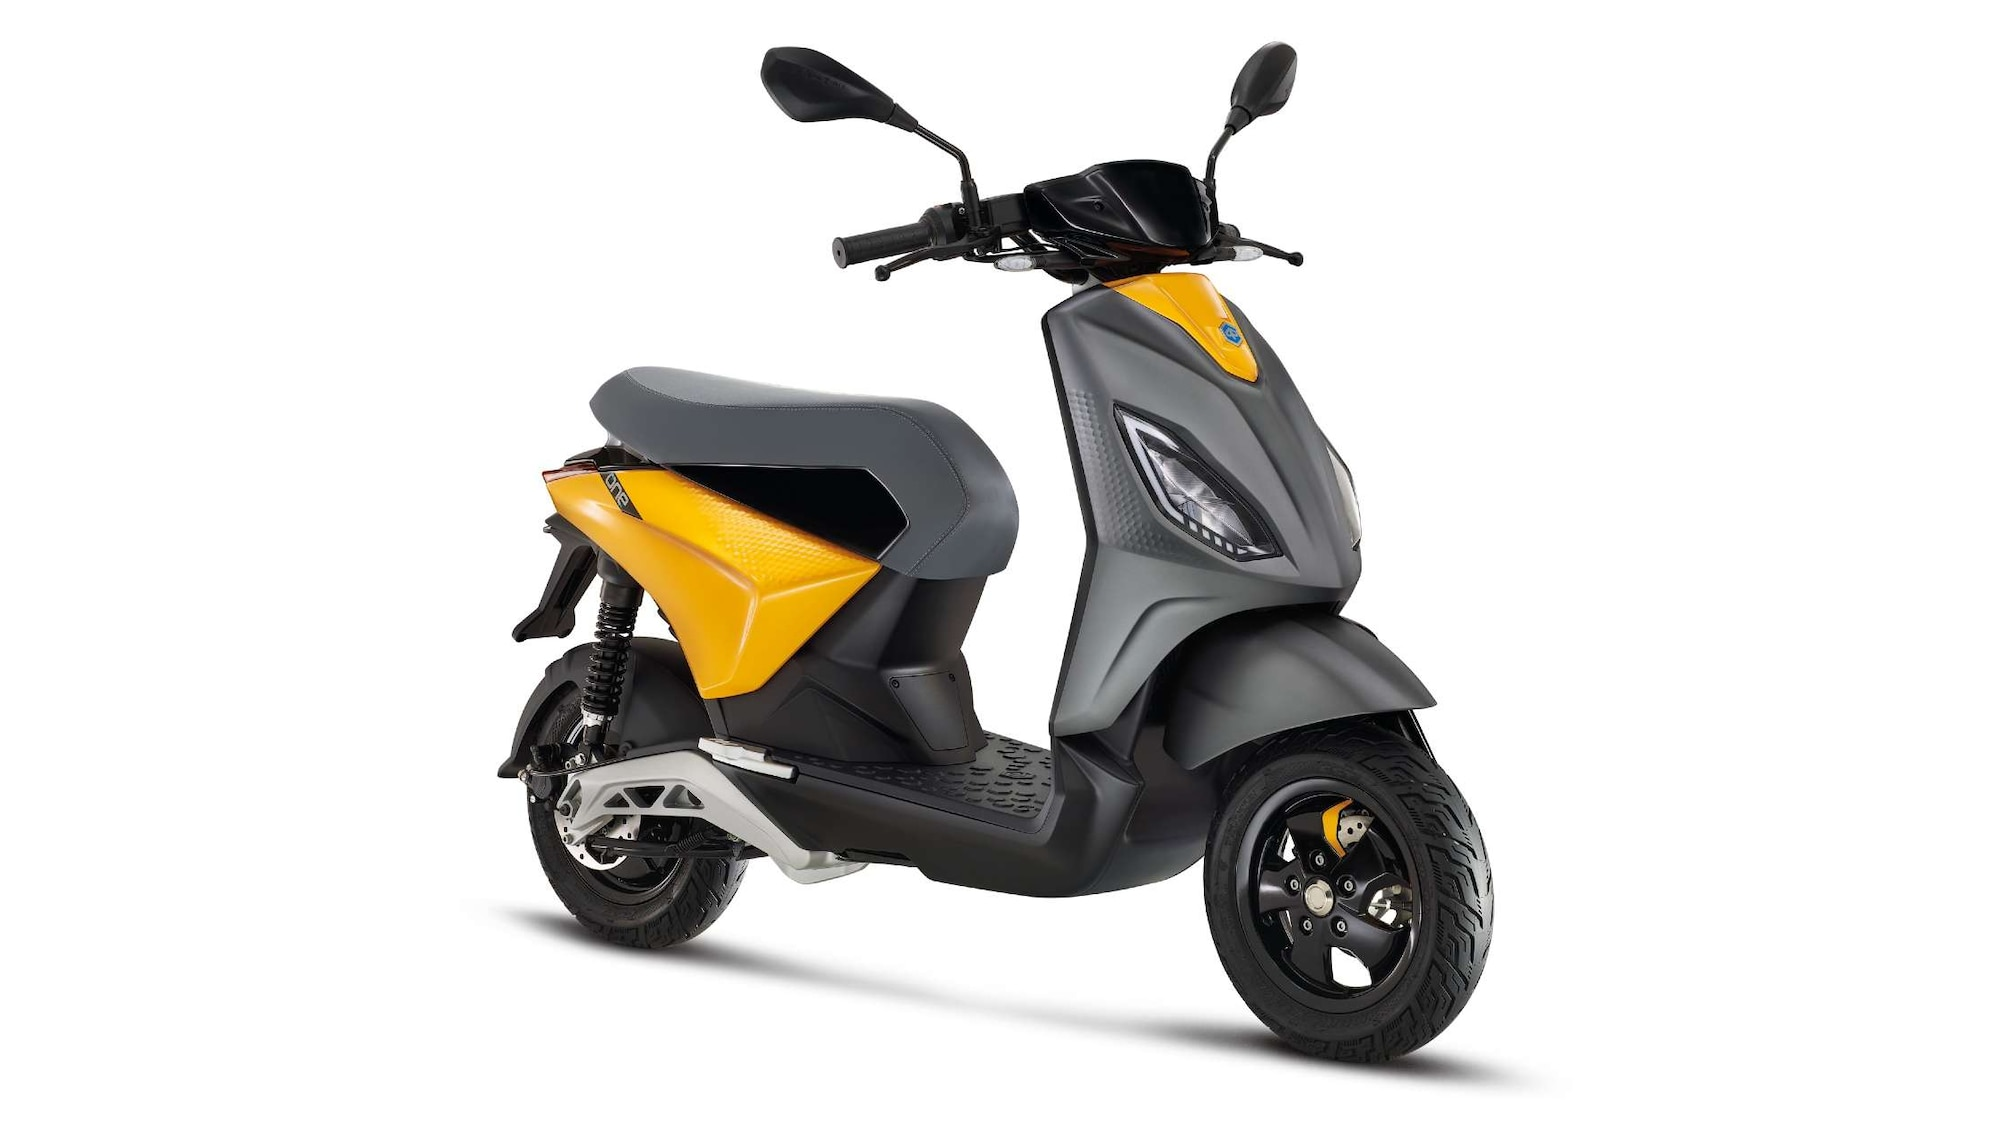 The Piaggio One features removable batteries. Image: Piaggio